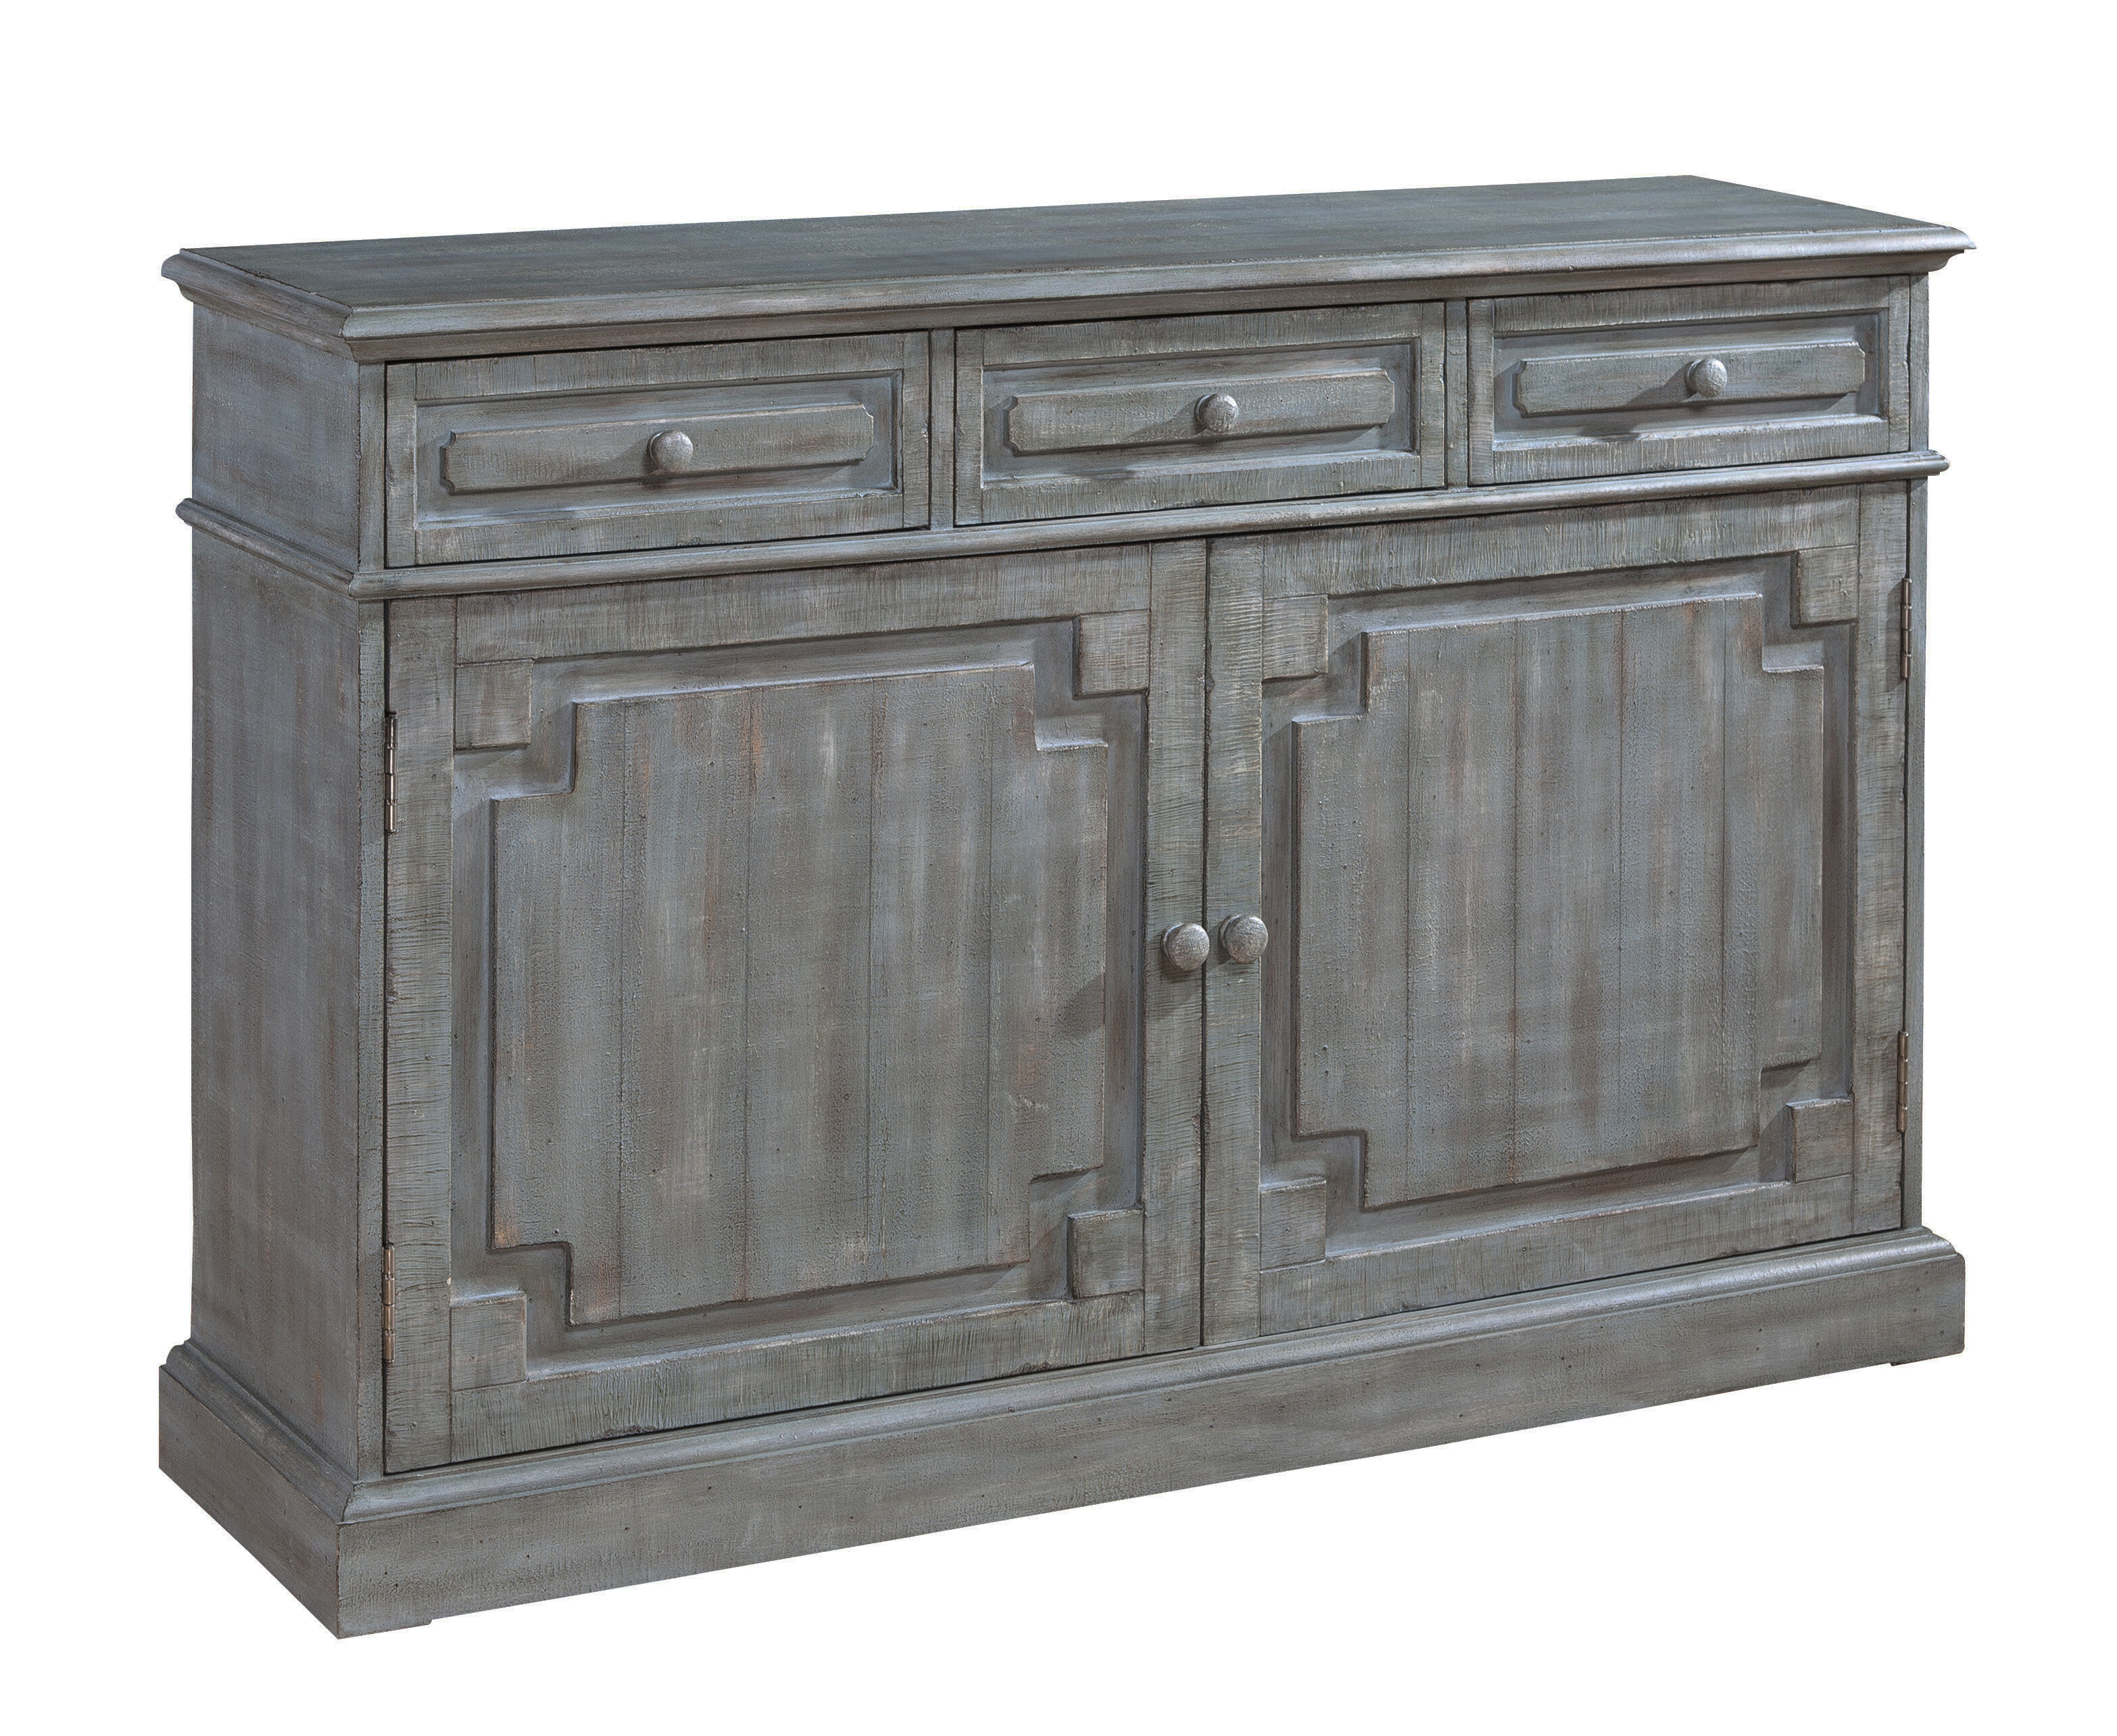 Adelbert Credenza with regard to Senda Credenzas (Image 5 of 30)